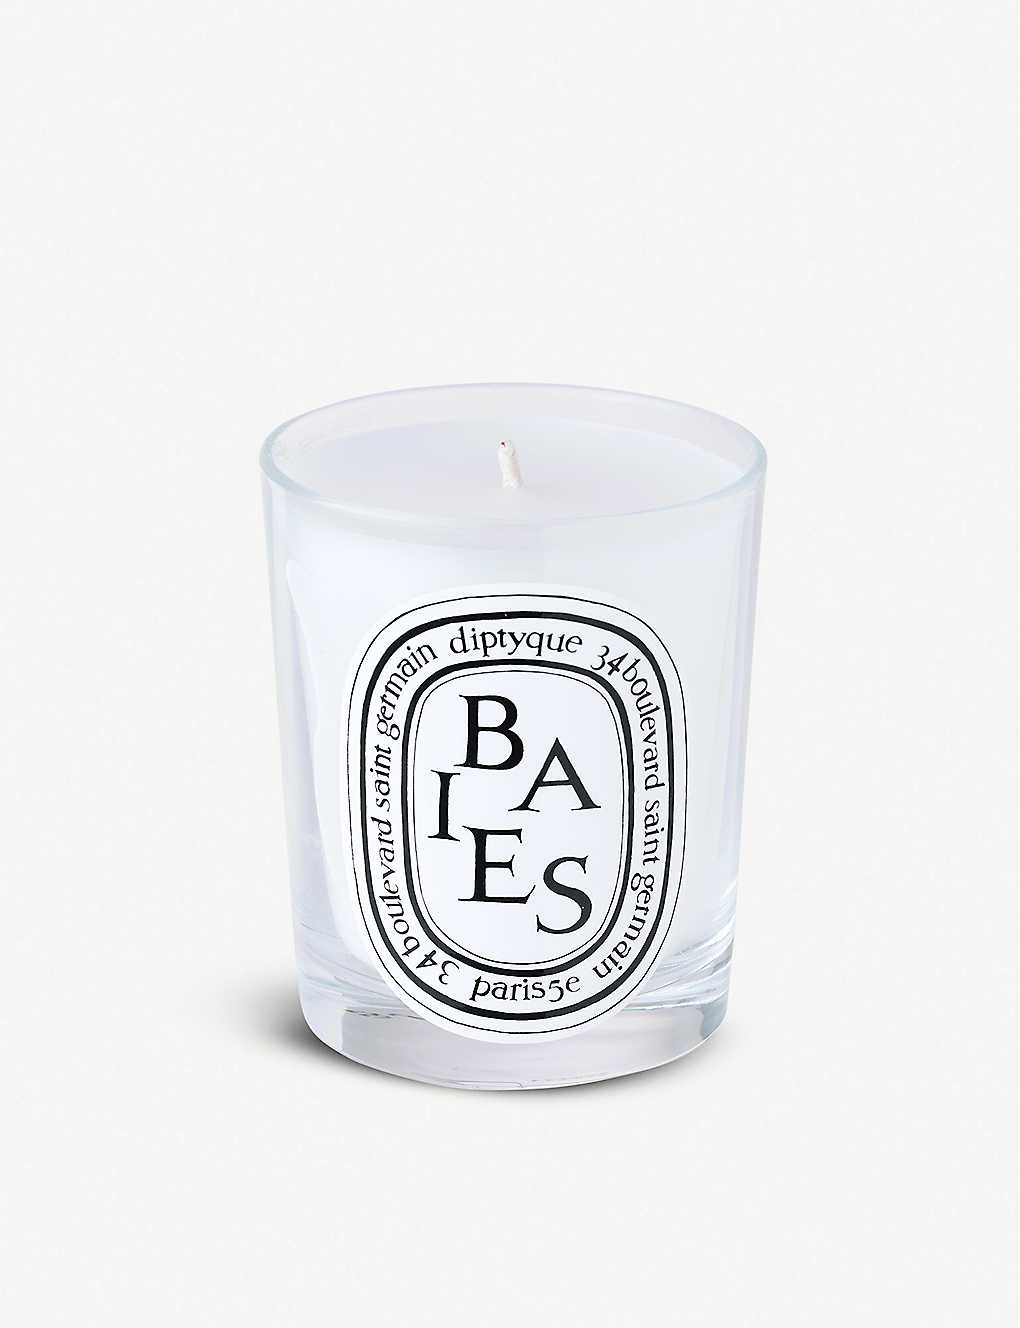 DIPTYQUE   Baies scented candle 20g   Selfridges.com